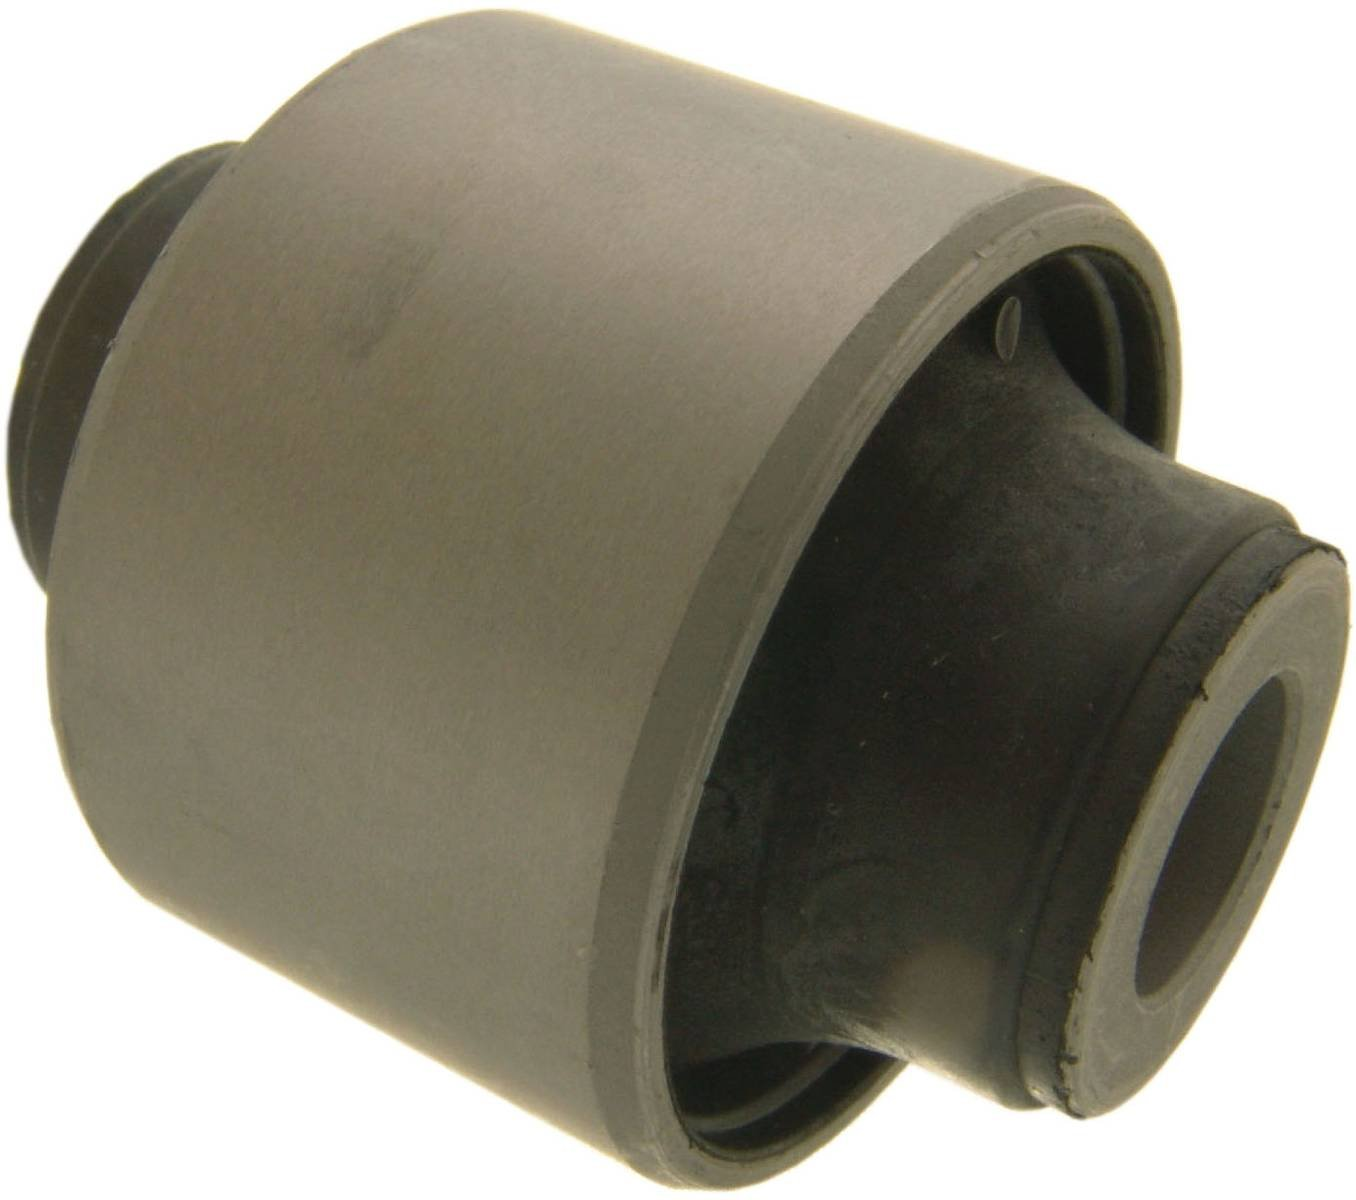 52622Sp0003 - Arm Bushing (for the Rear Shock Absorber) For Honda - Febest by Febest